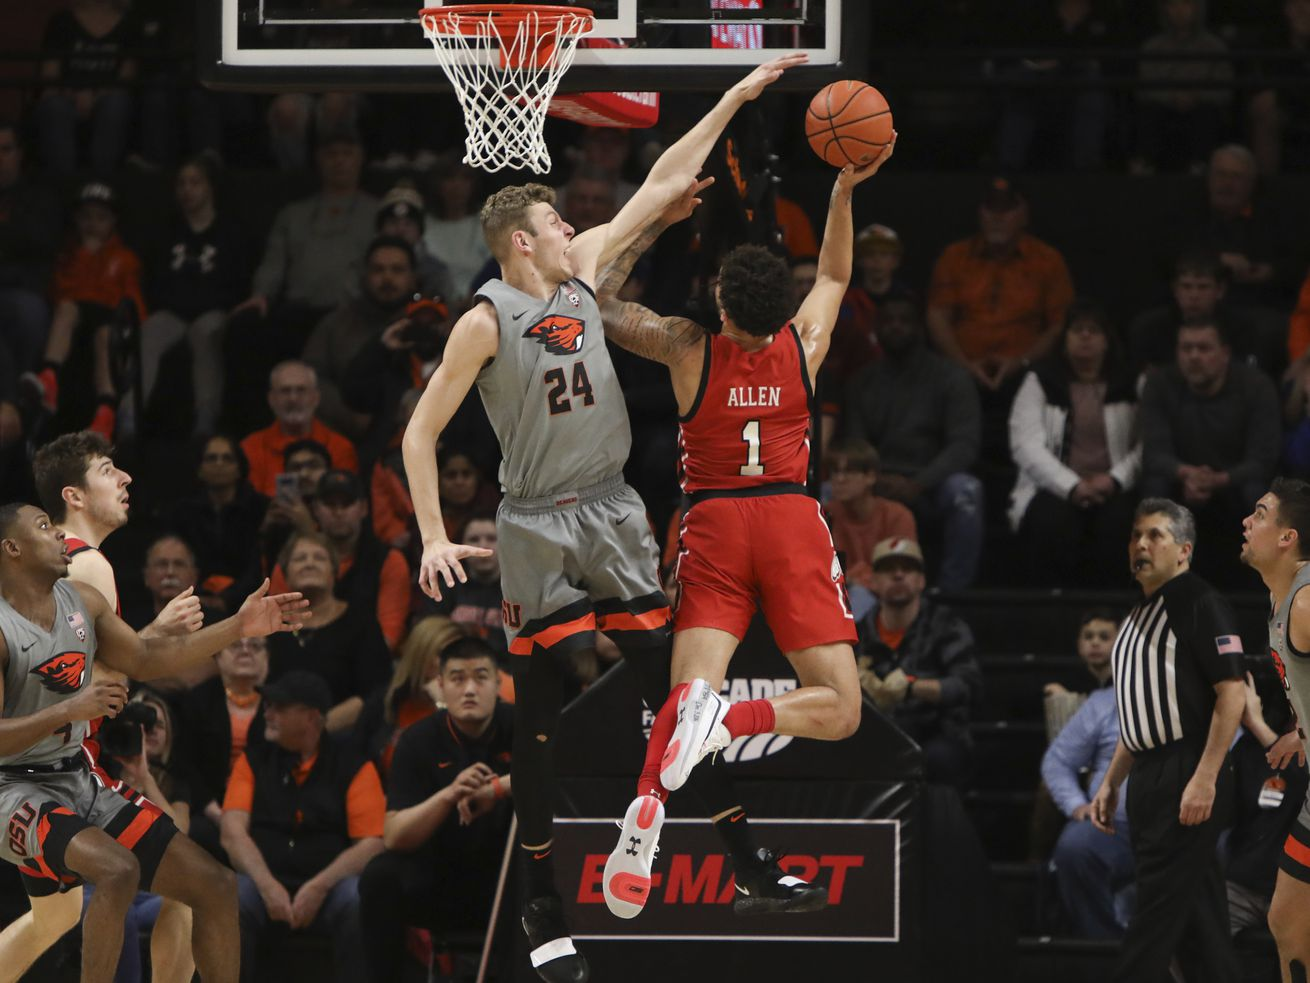 Utes' last chance for resume-building win comes Sunday against No. 17 Oregon